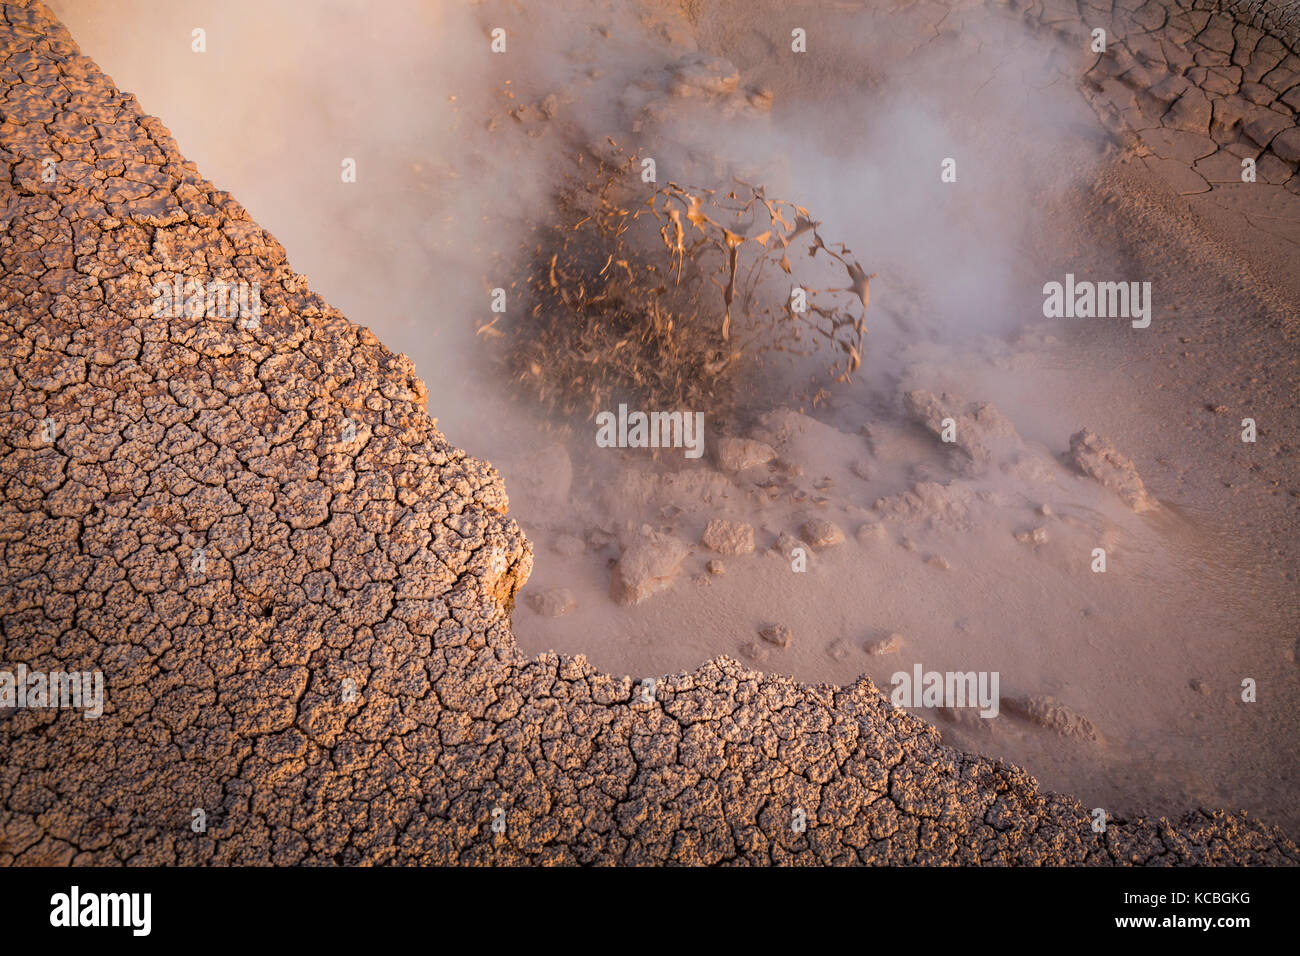 Close-up view of fumarole eruption - Stock Image